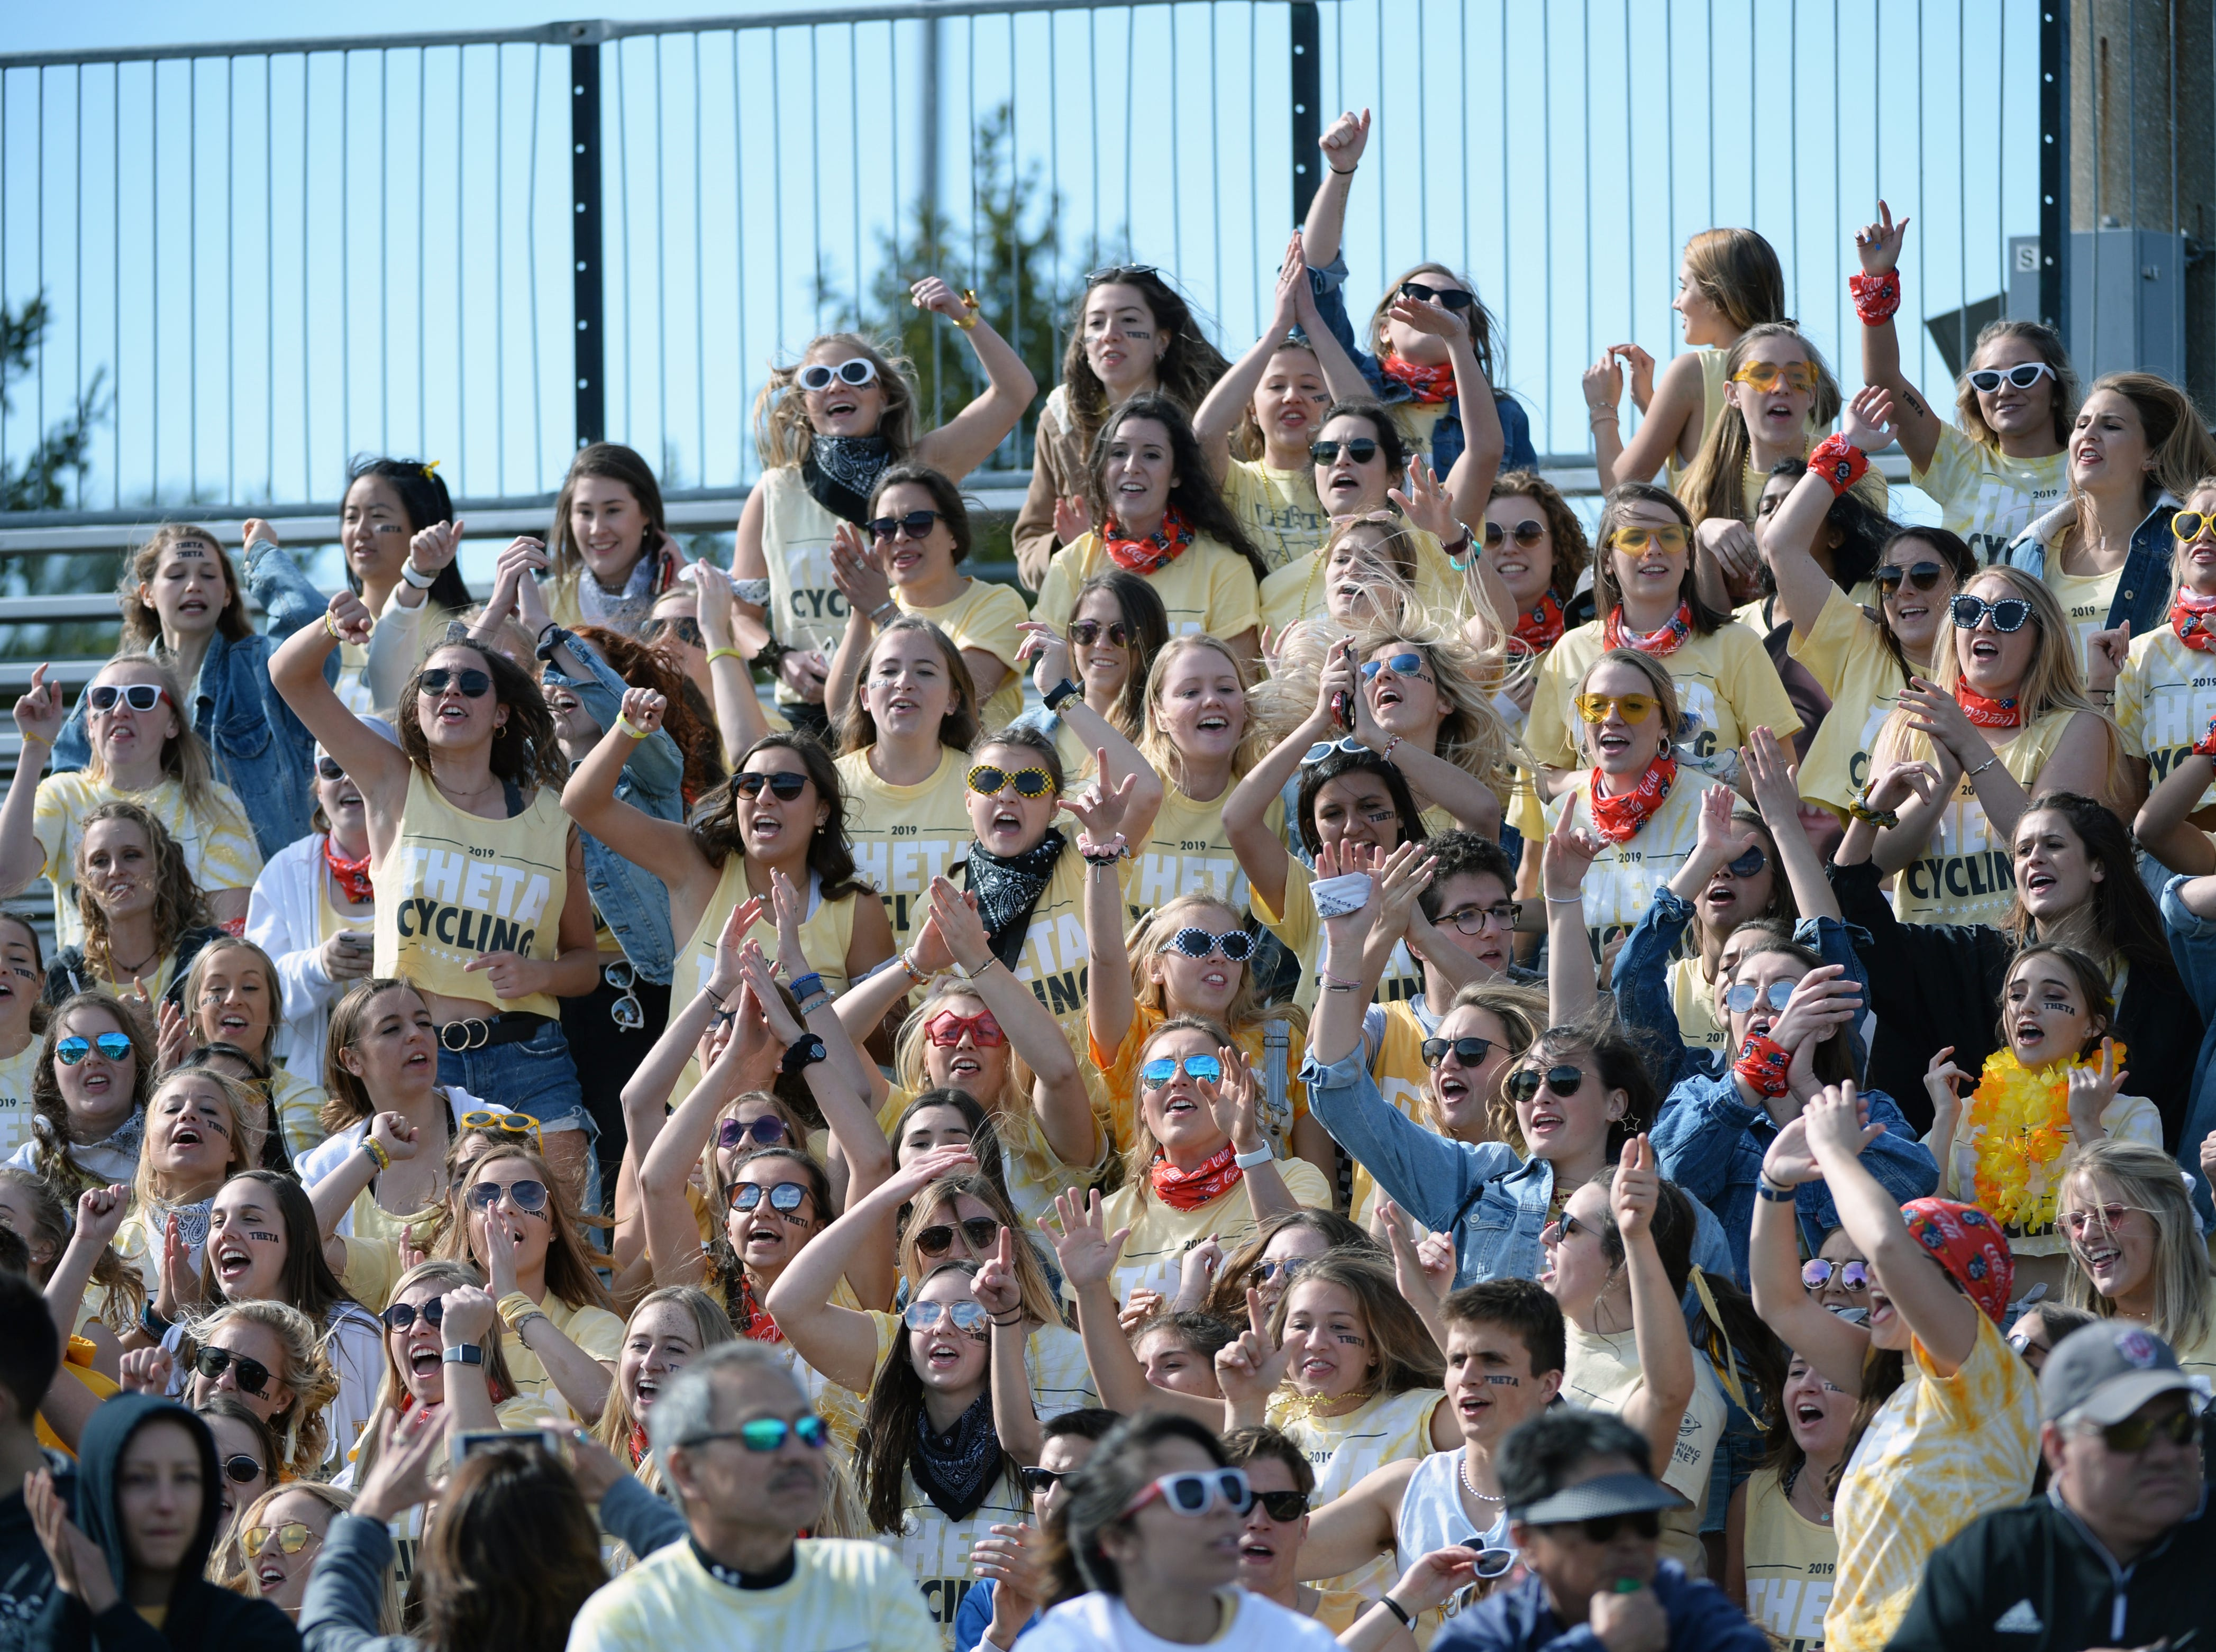 Kappa Alpha Theta fans cheer during the women's Little 500 at Bill Armstrong Stadium in Bloomington, Ind., on Friday, April 12, 2019.